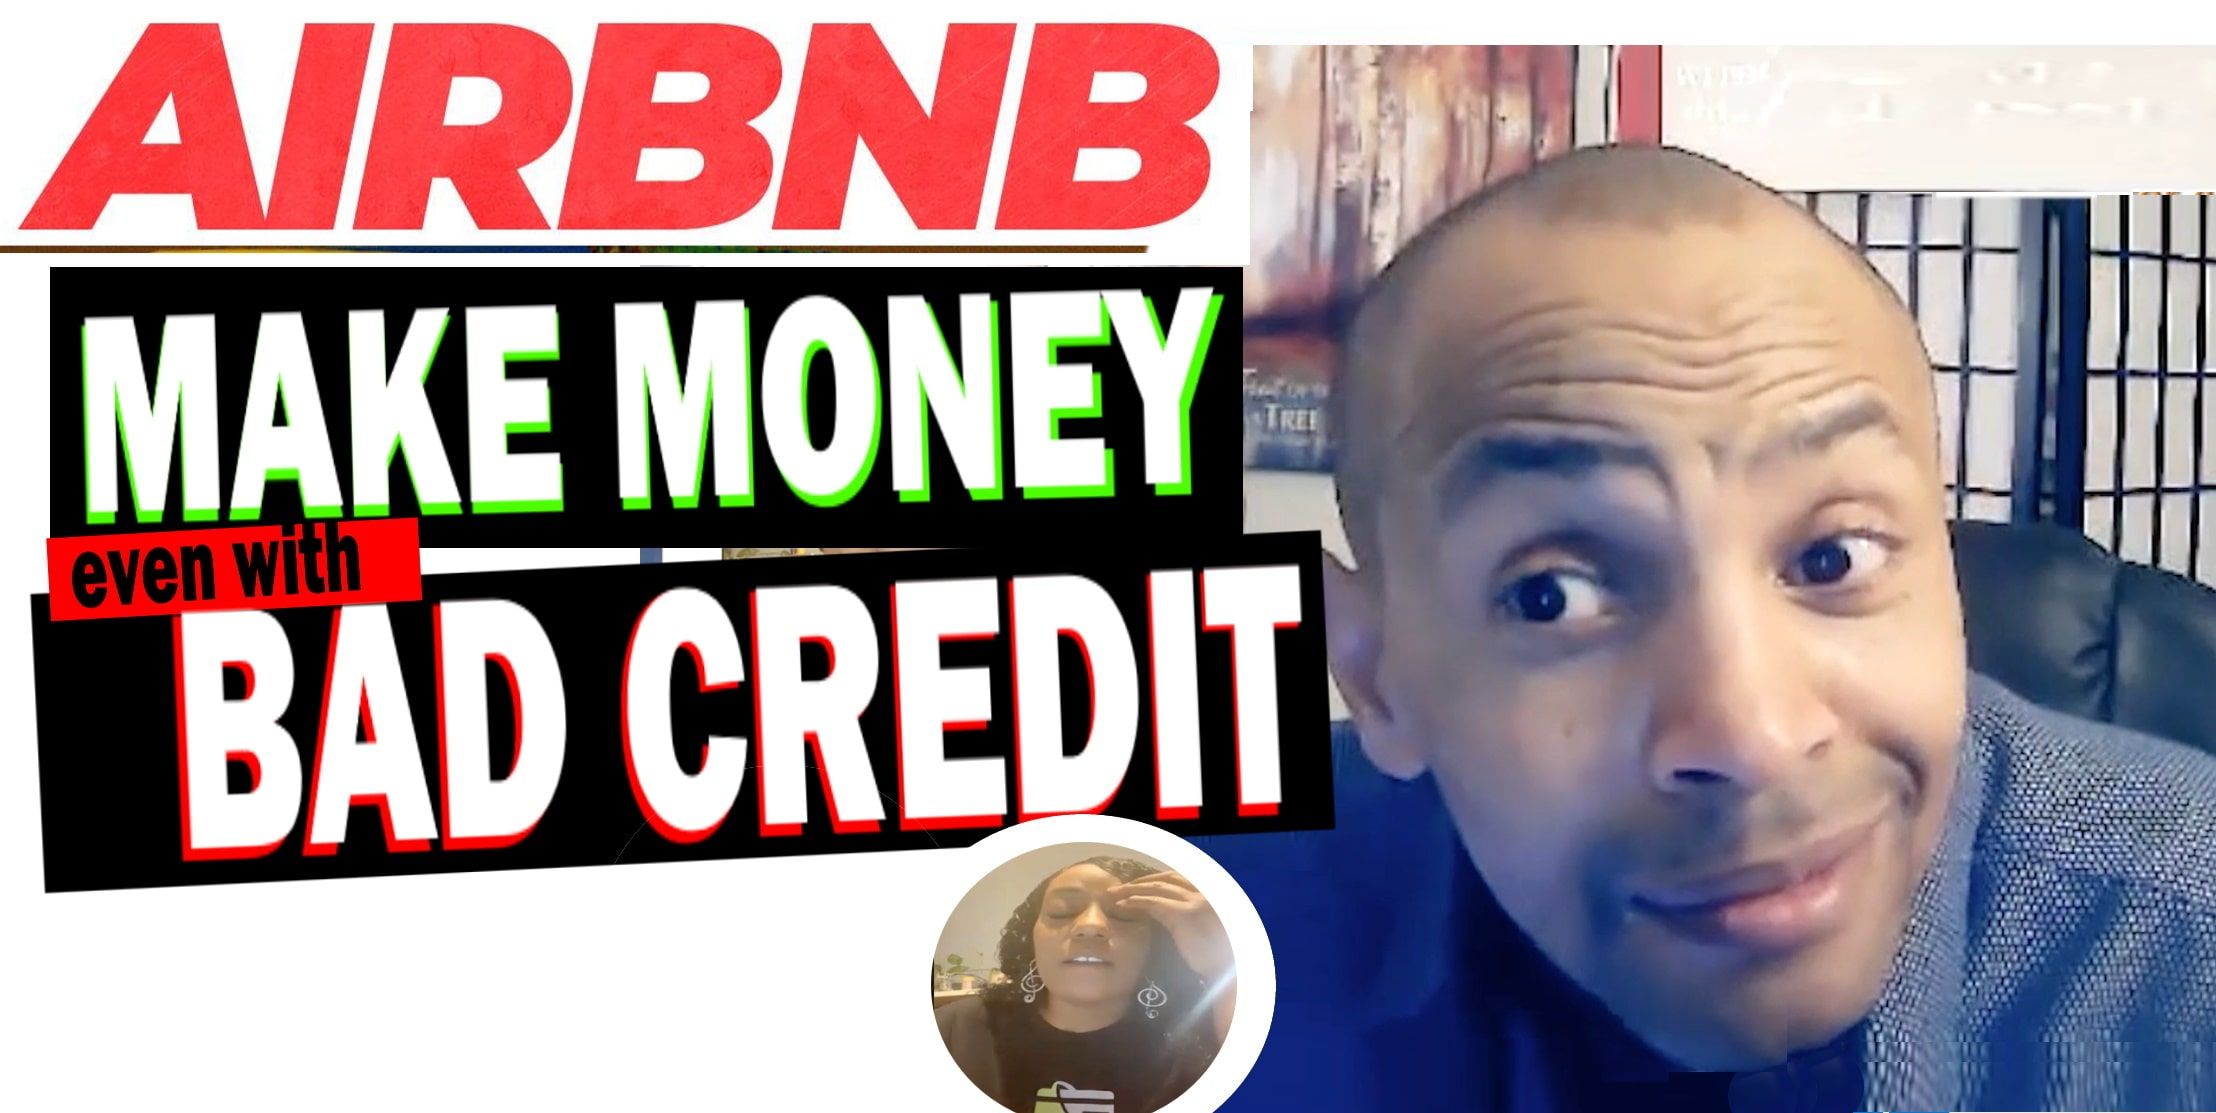 DONT LET BAD CREDIT STOP YOU - MAKE MONEY ON AIRBNB WITHOUT PROPERTY (AIRBNB HOST TIPS SECRETS)